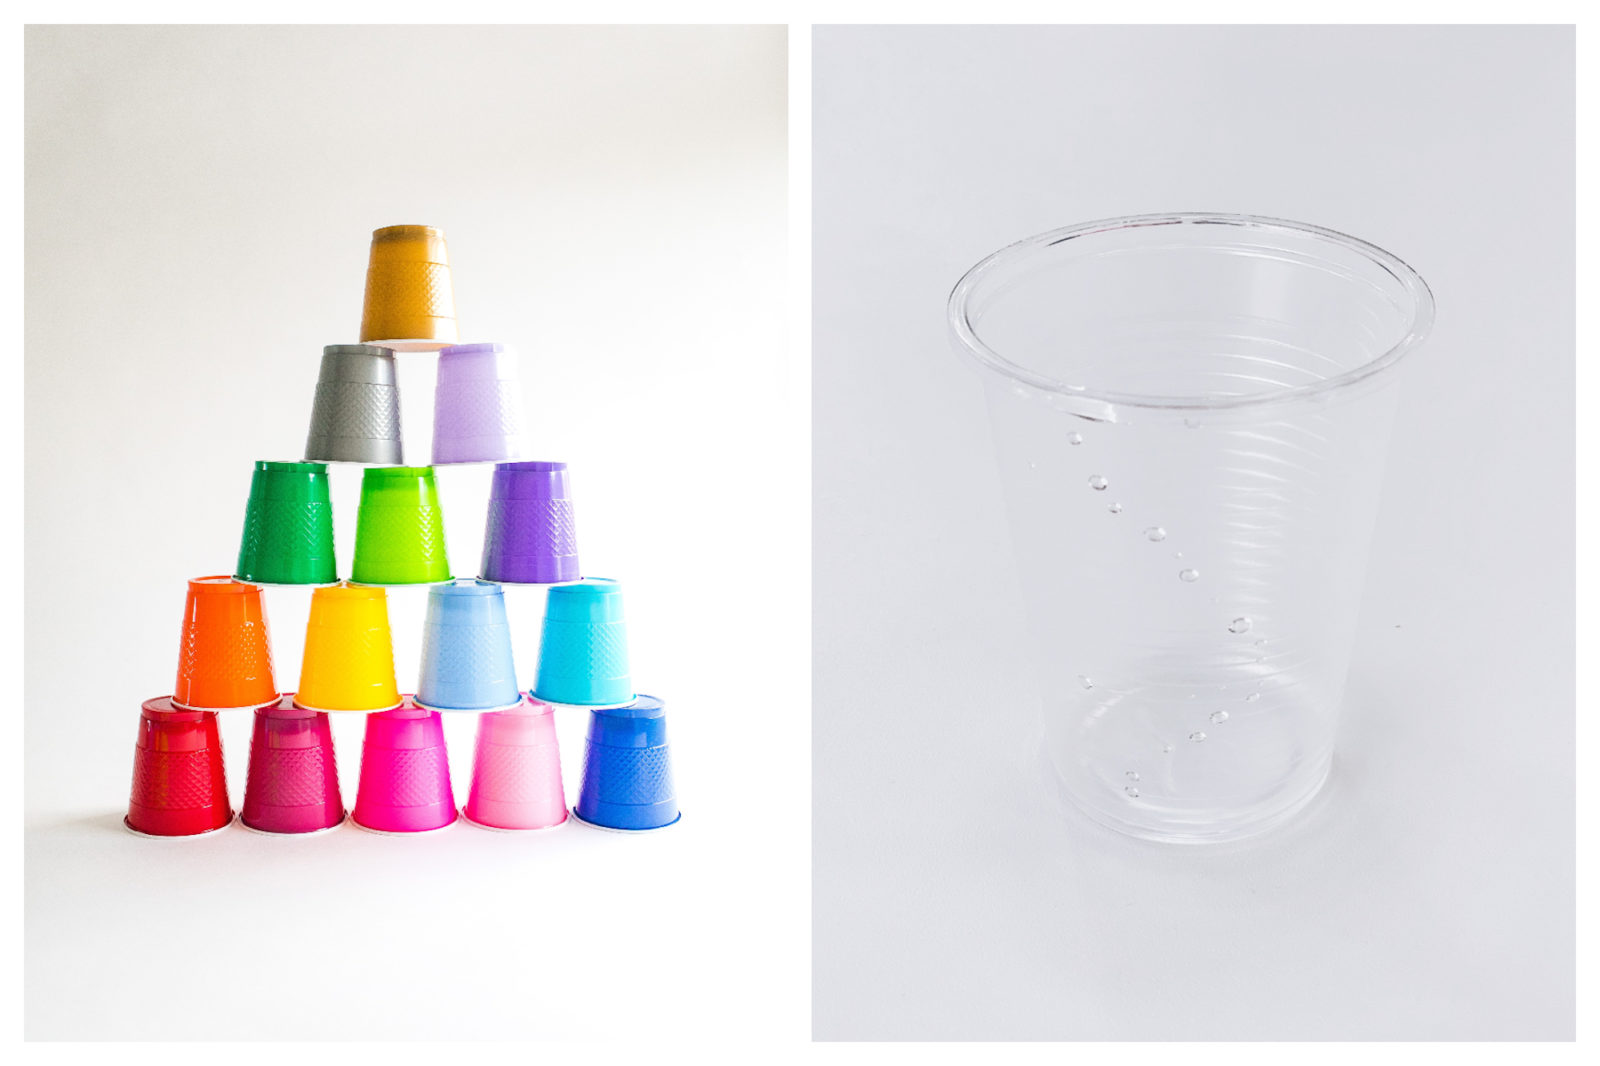 Don't be tempted by colorful plastic cups like those arranged in a pyramid here (left) and forget the common plastic cup (right) as France's plastic ban on single-use plastics comes into play.